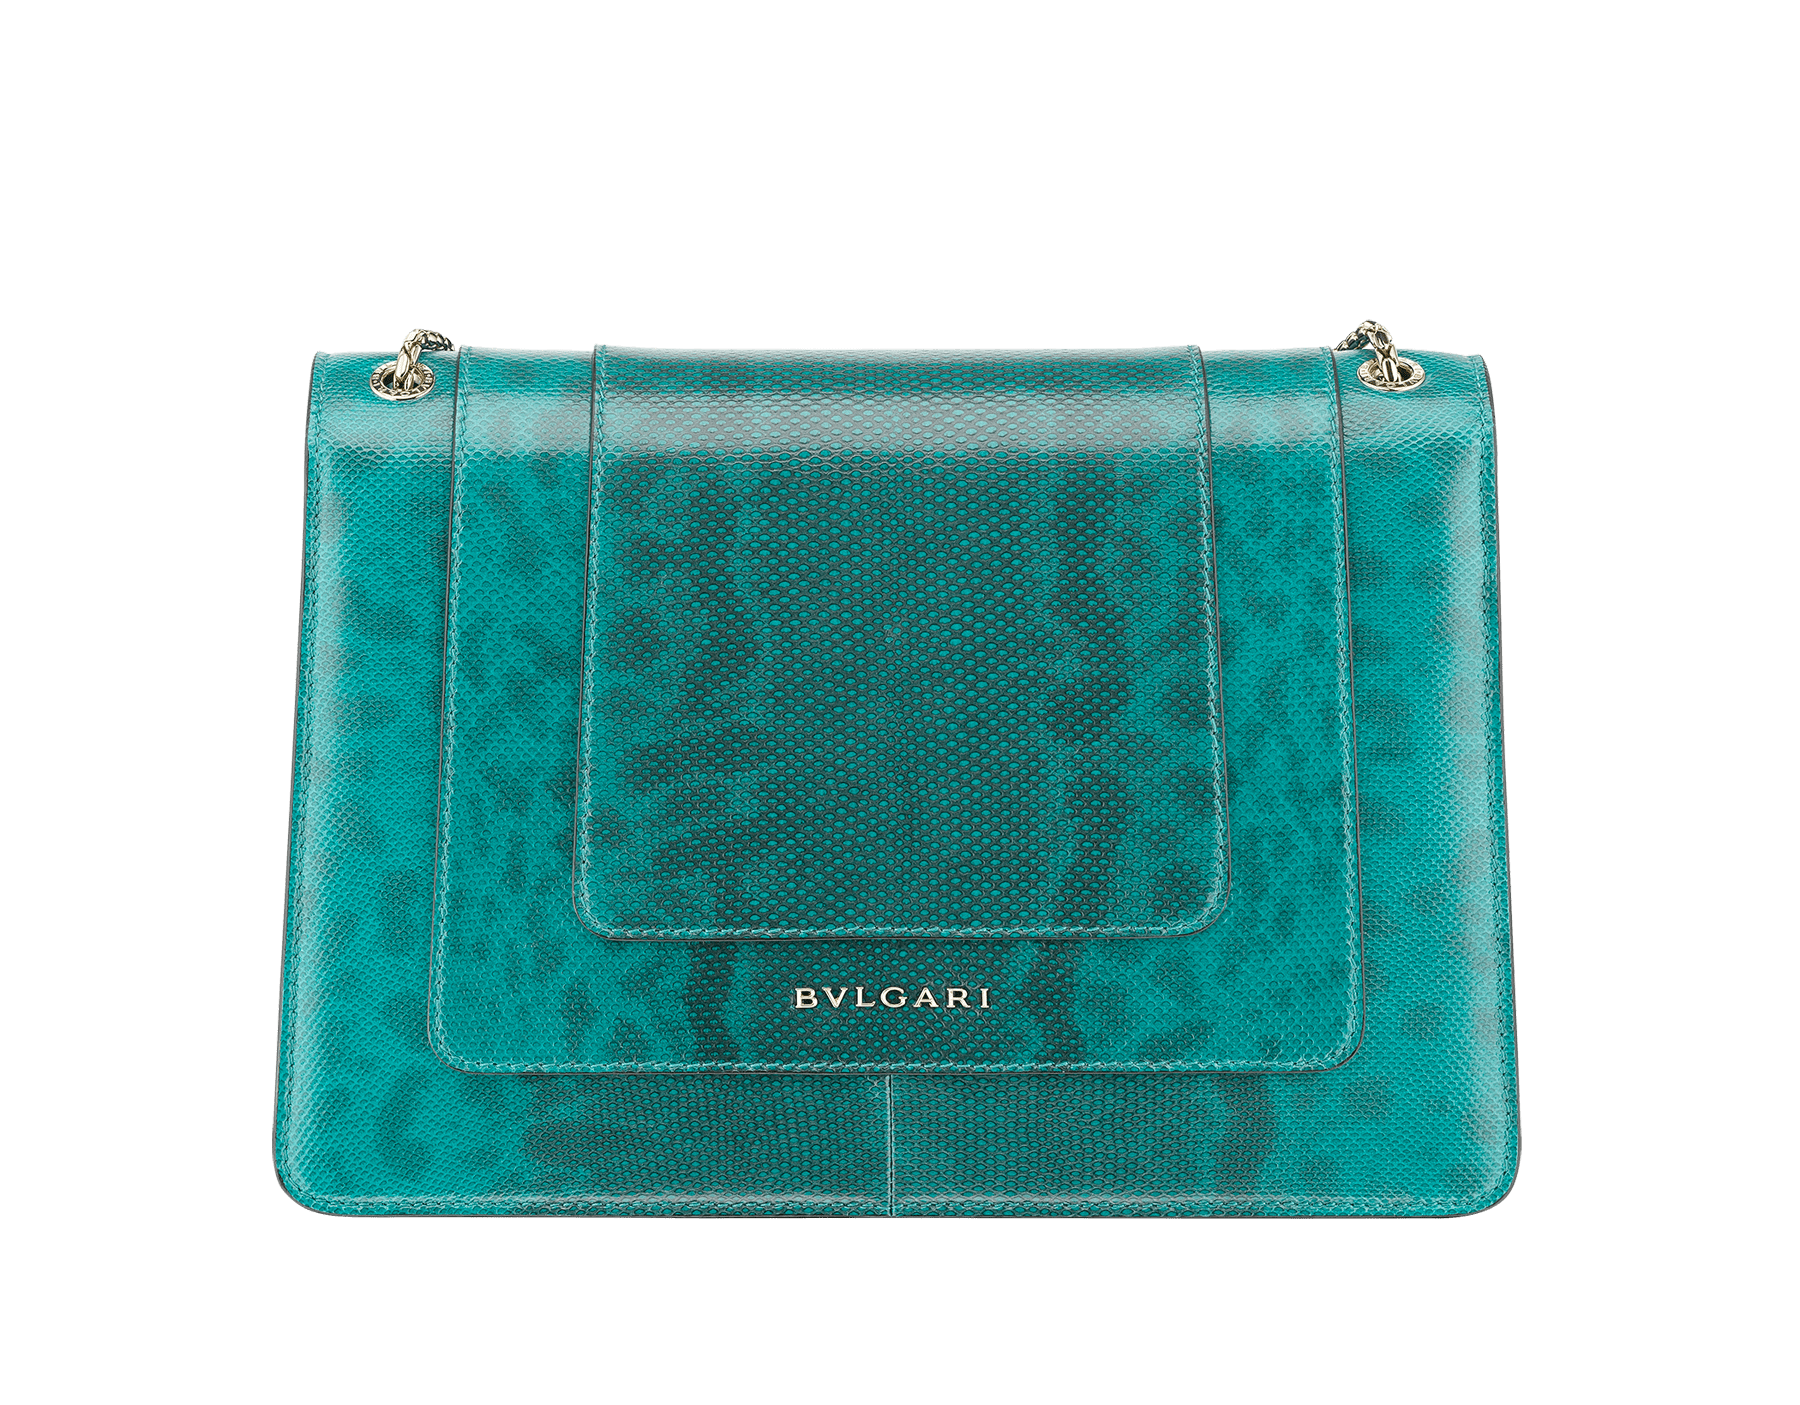 Serpenti Forever shoulder bag in tropical turquoise shiny karung skin. Snakehead closure in light gold plated brass decorated with black and white enamel, and green malachite eyes. 287917 image 3